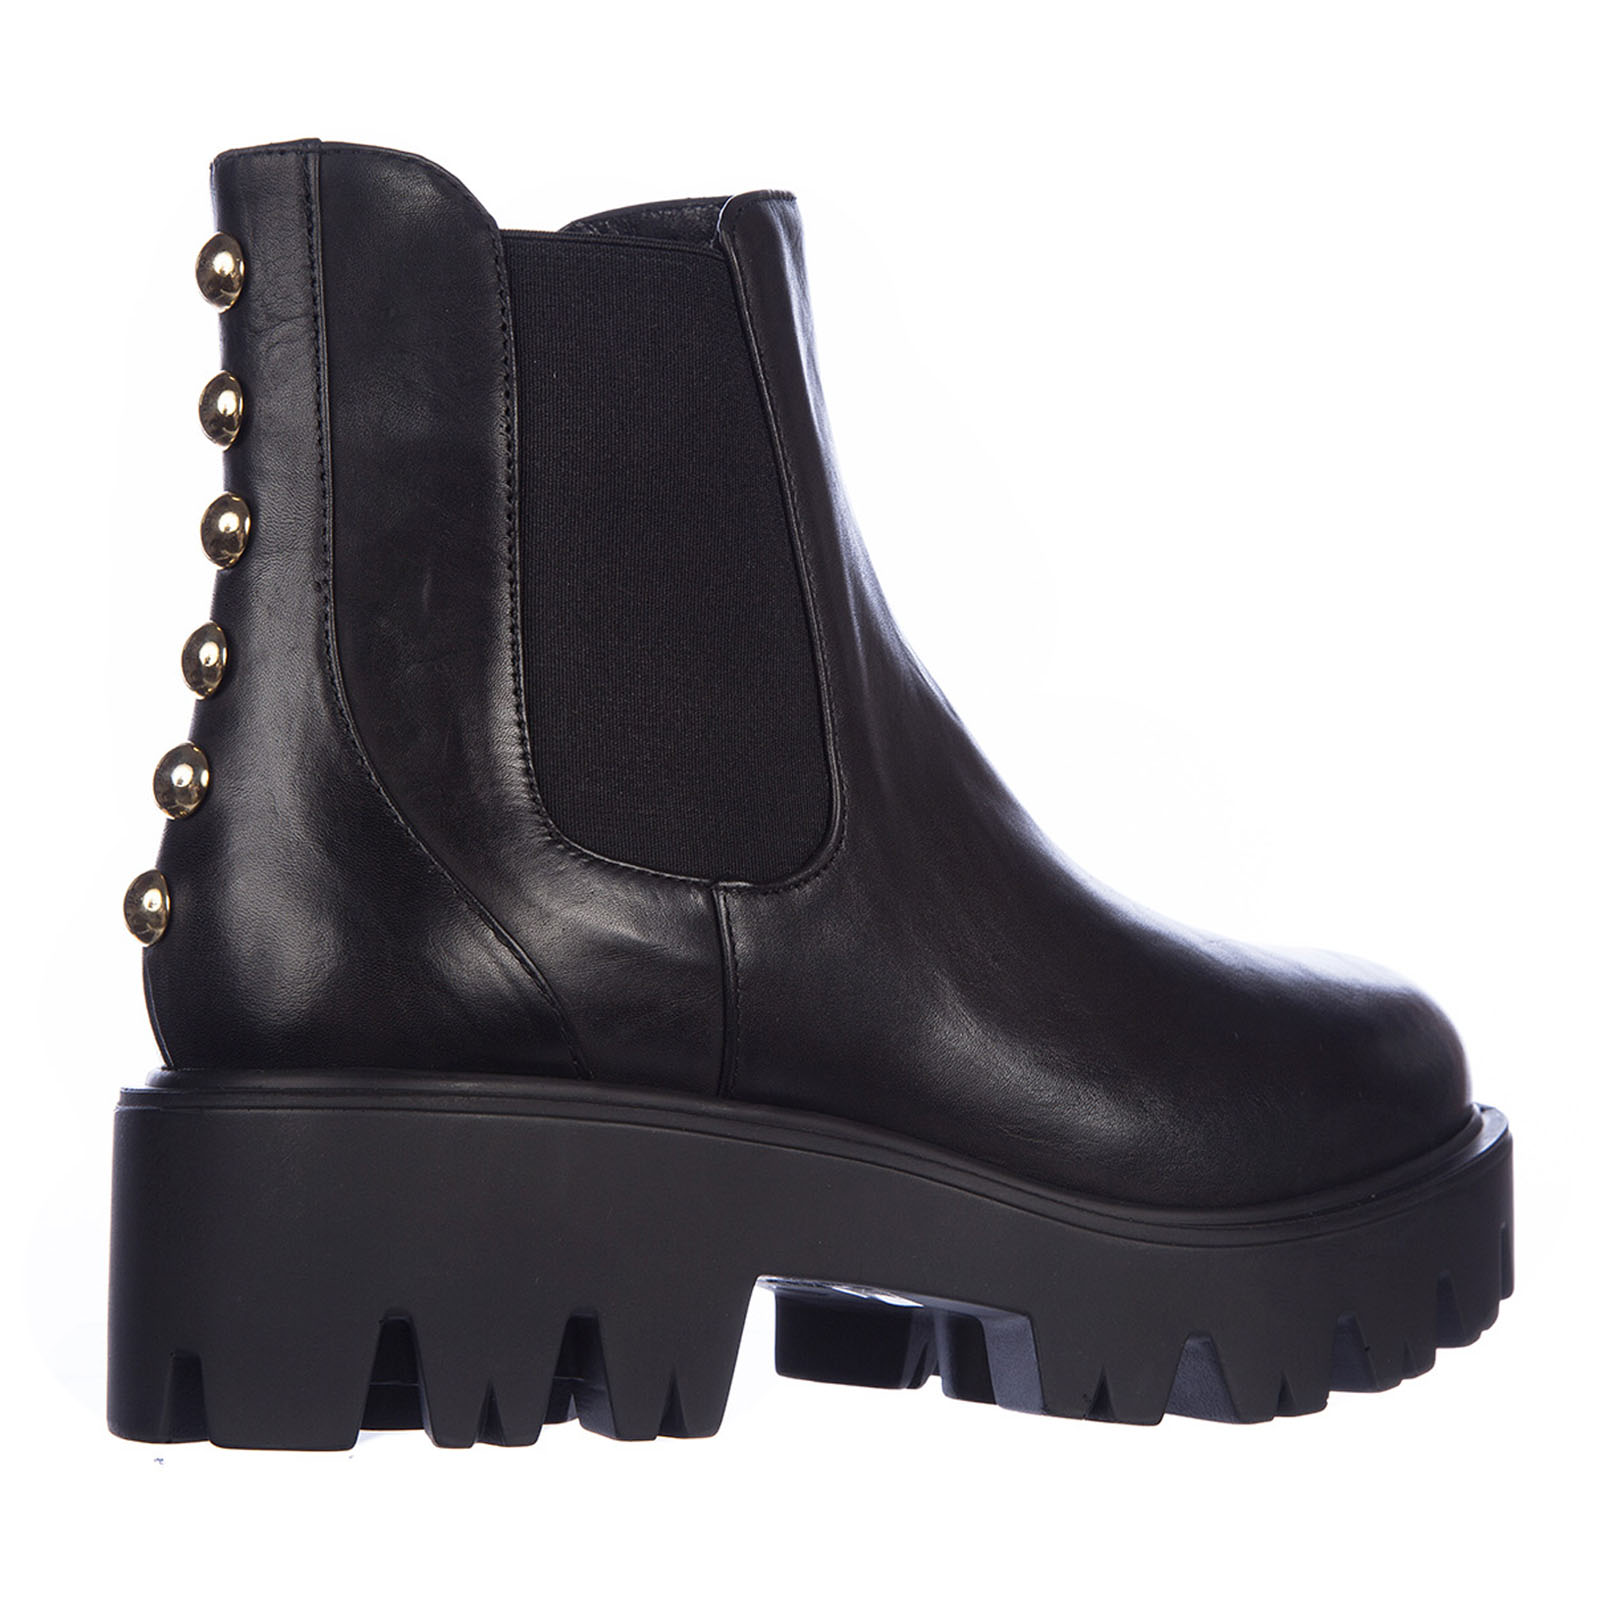 Women's leather ankle boots booties